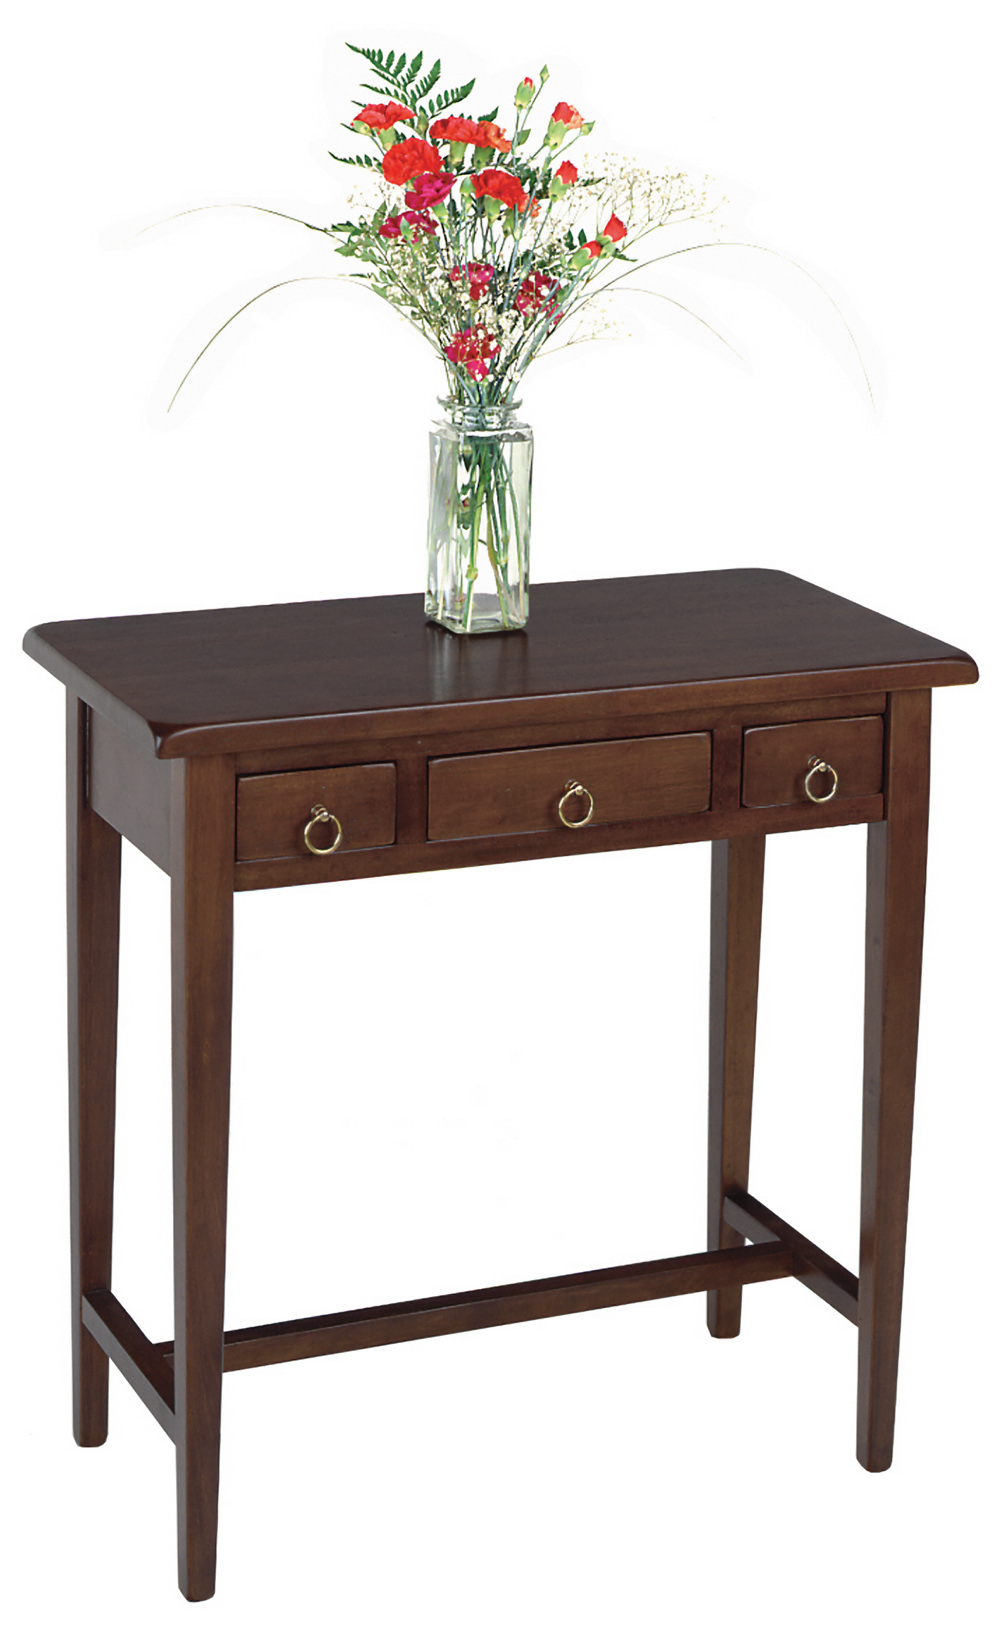 Winsome 94329 Walnut Beechwood HALL TABLE 3 DRAWERS